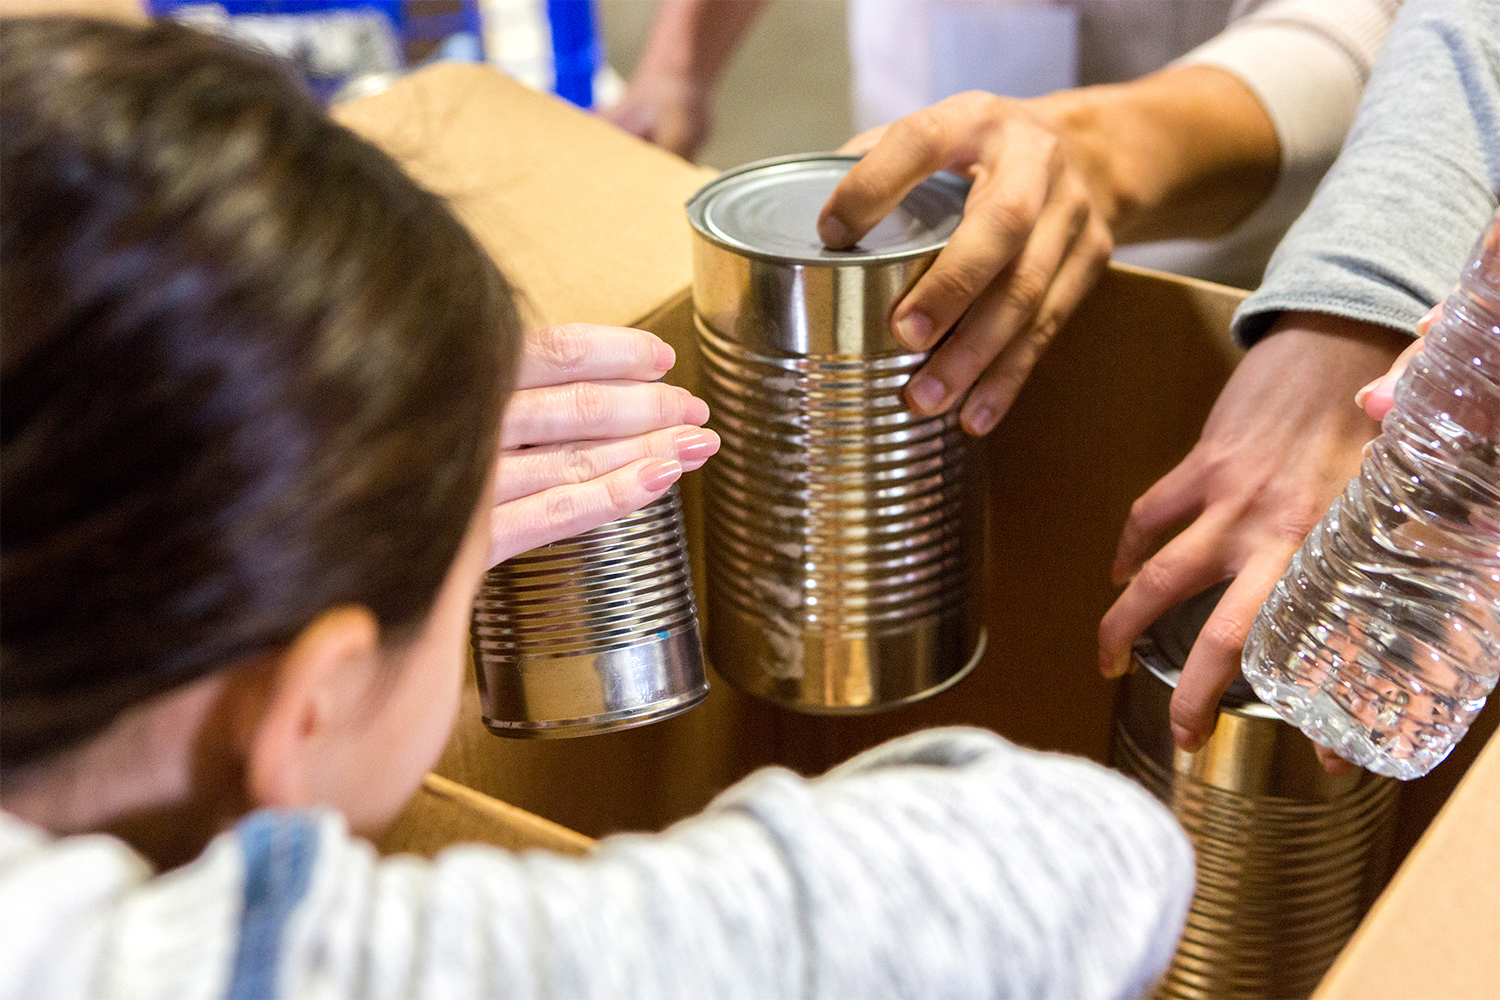 Agency stocking boxes with canned goods